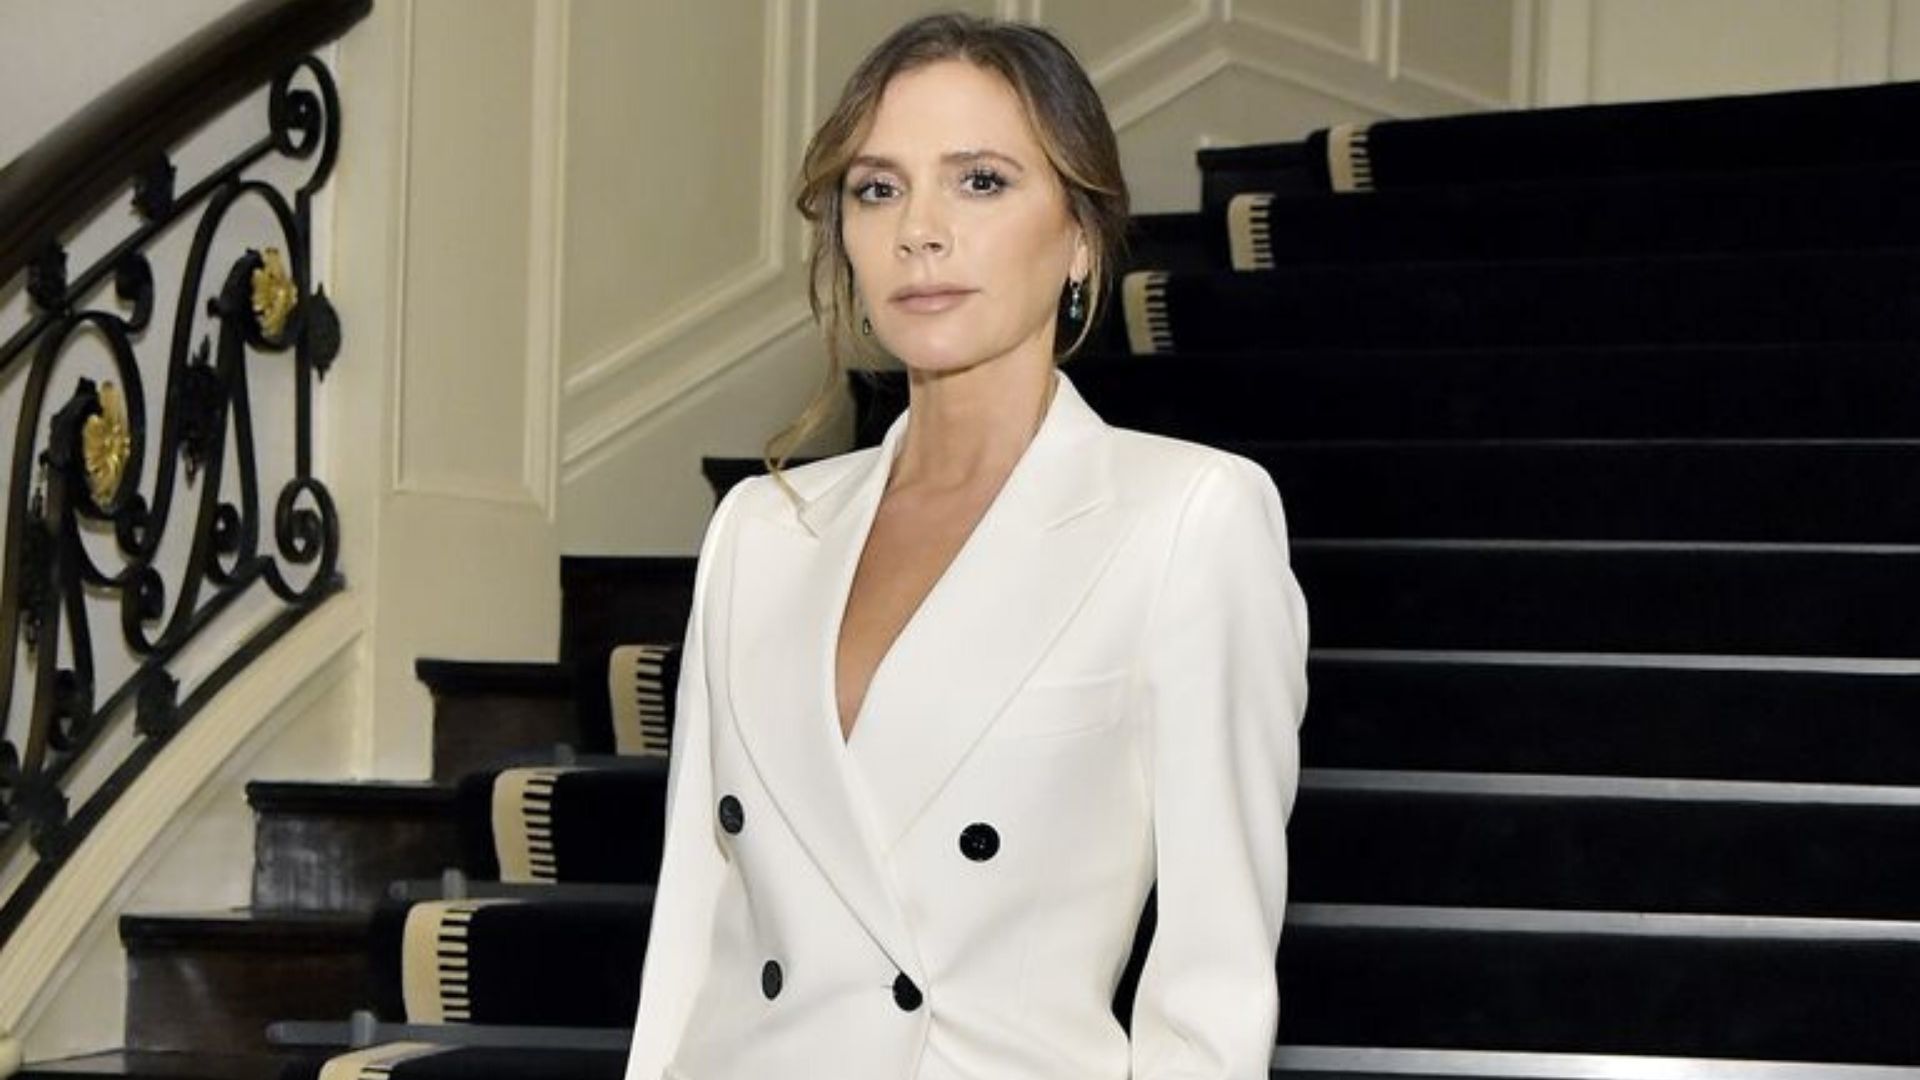 These Are The Two Fashion Trends Victoria Beckham Doesn't Understand